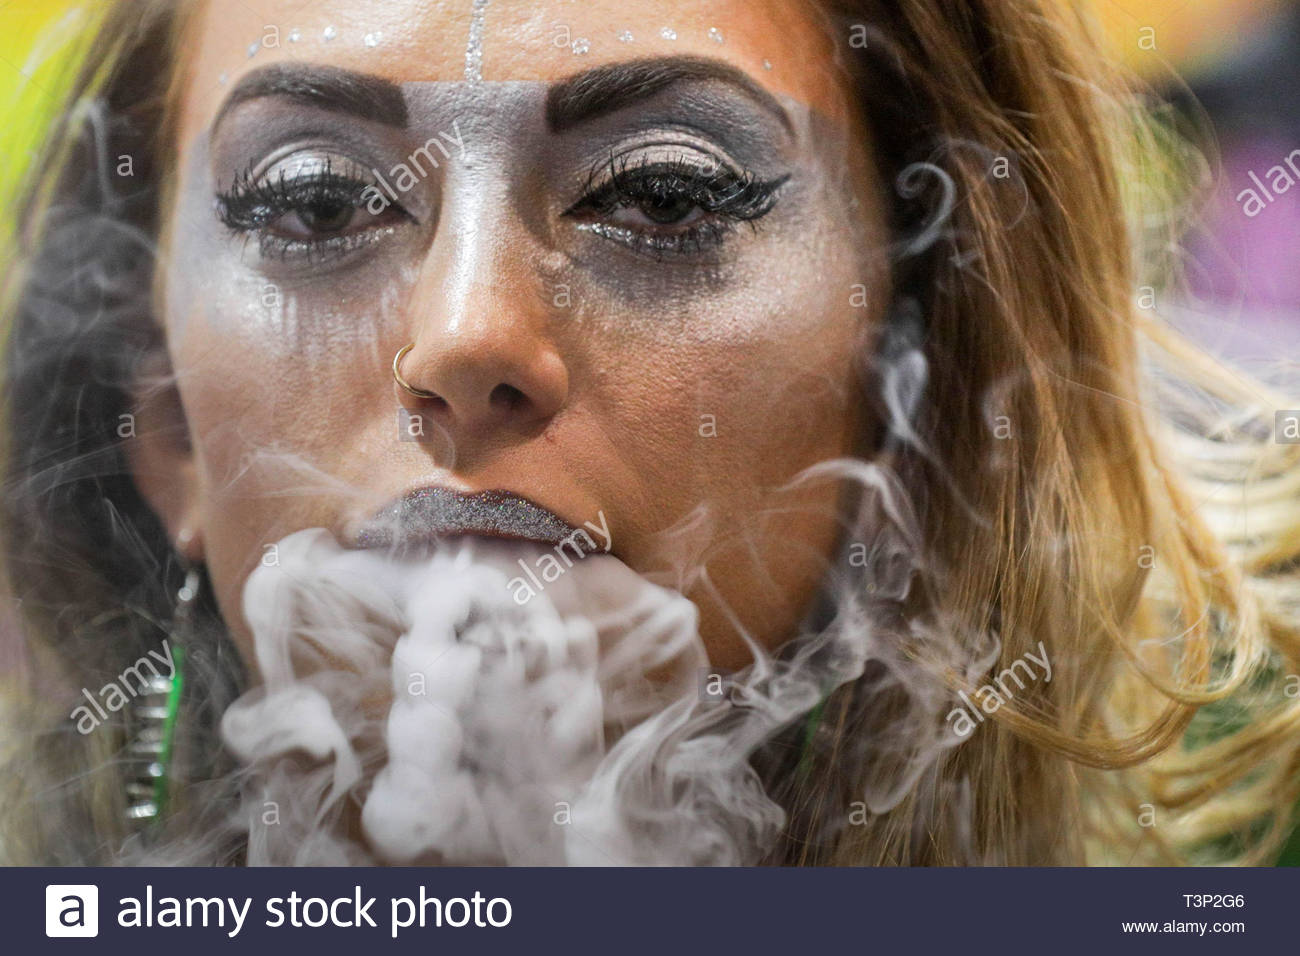 Londres, Royaume-Uni. Apr 11, 2019. Vape Jam UK voit des centaines de seine passionnés et cigarette électronique les entreprises Participation à la cinquième convention à Excel London. Crédit : Guy Josse/Alamy Live News Photo Stock